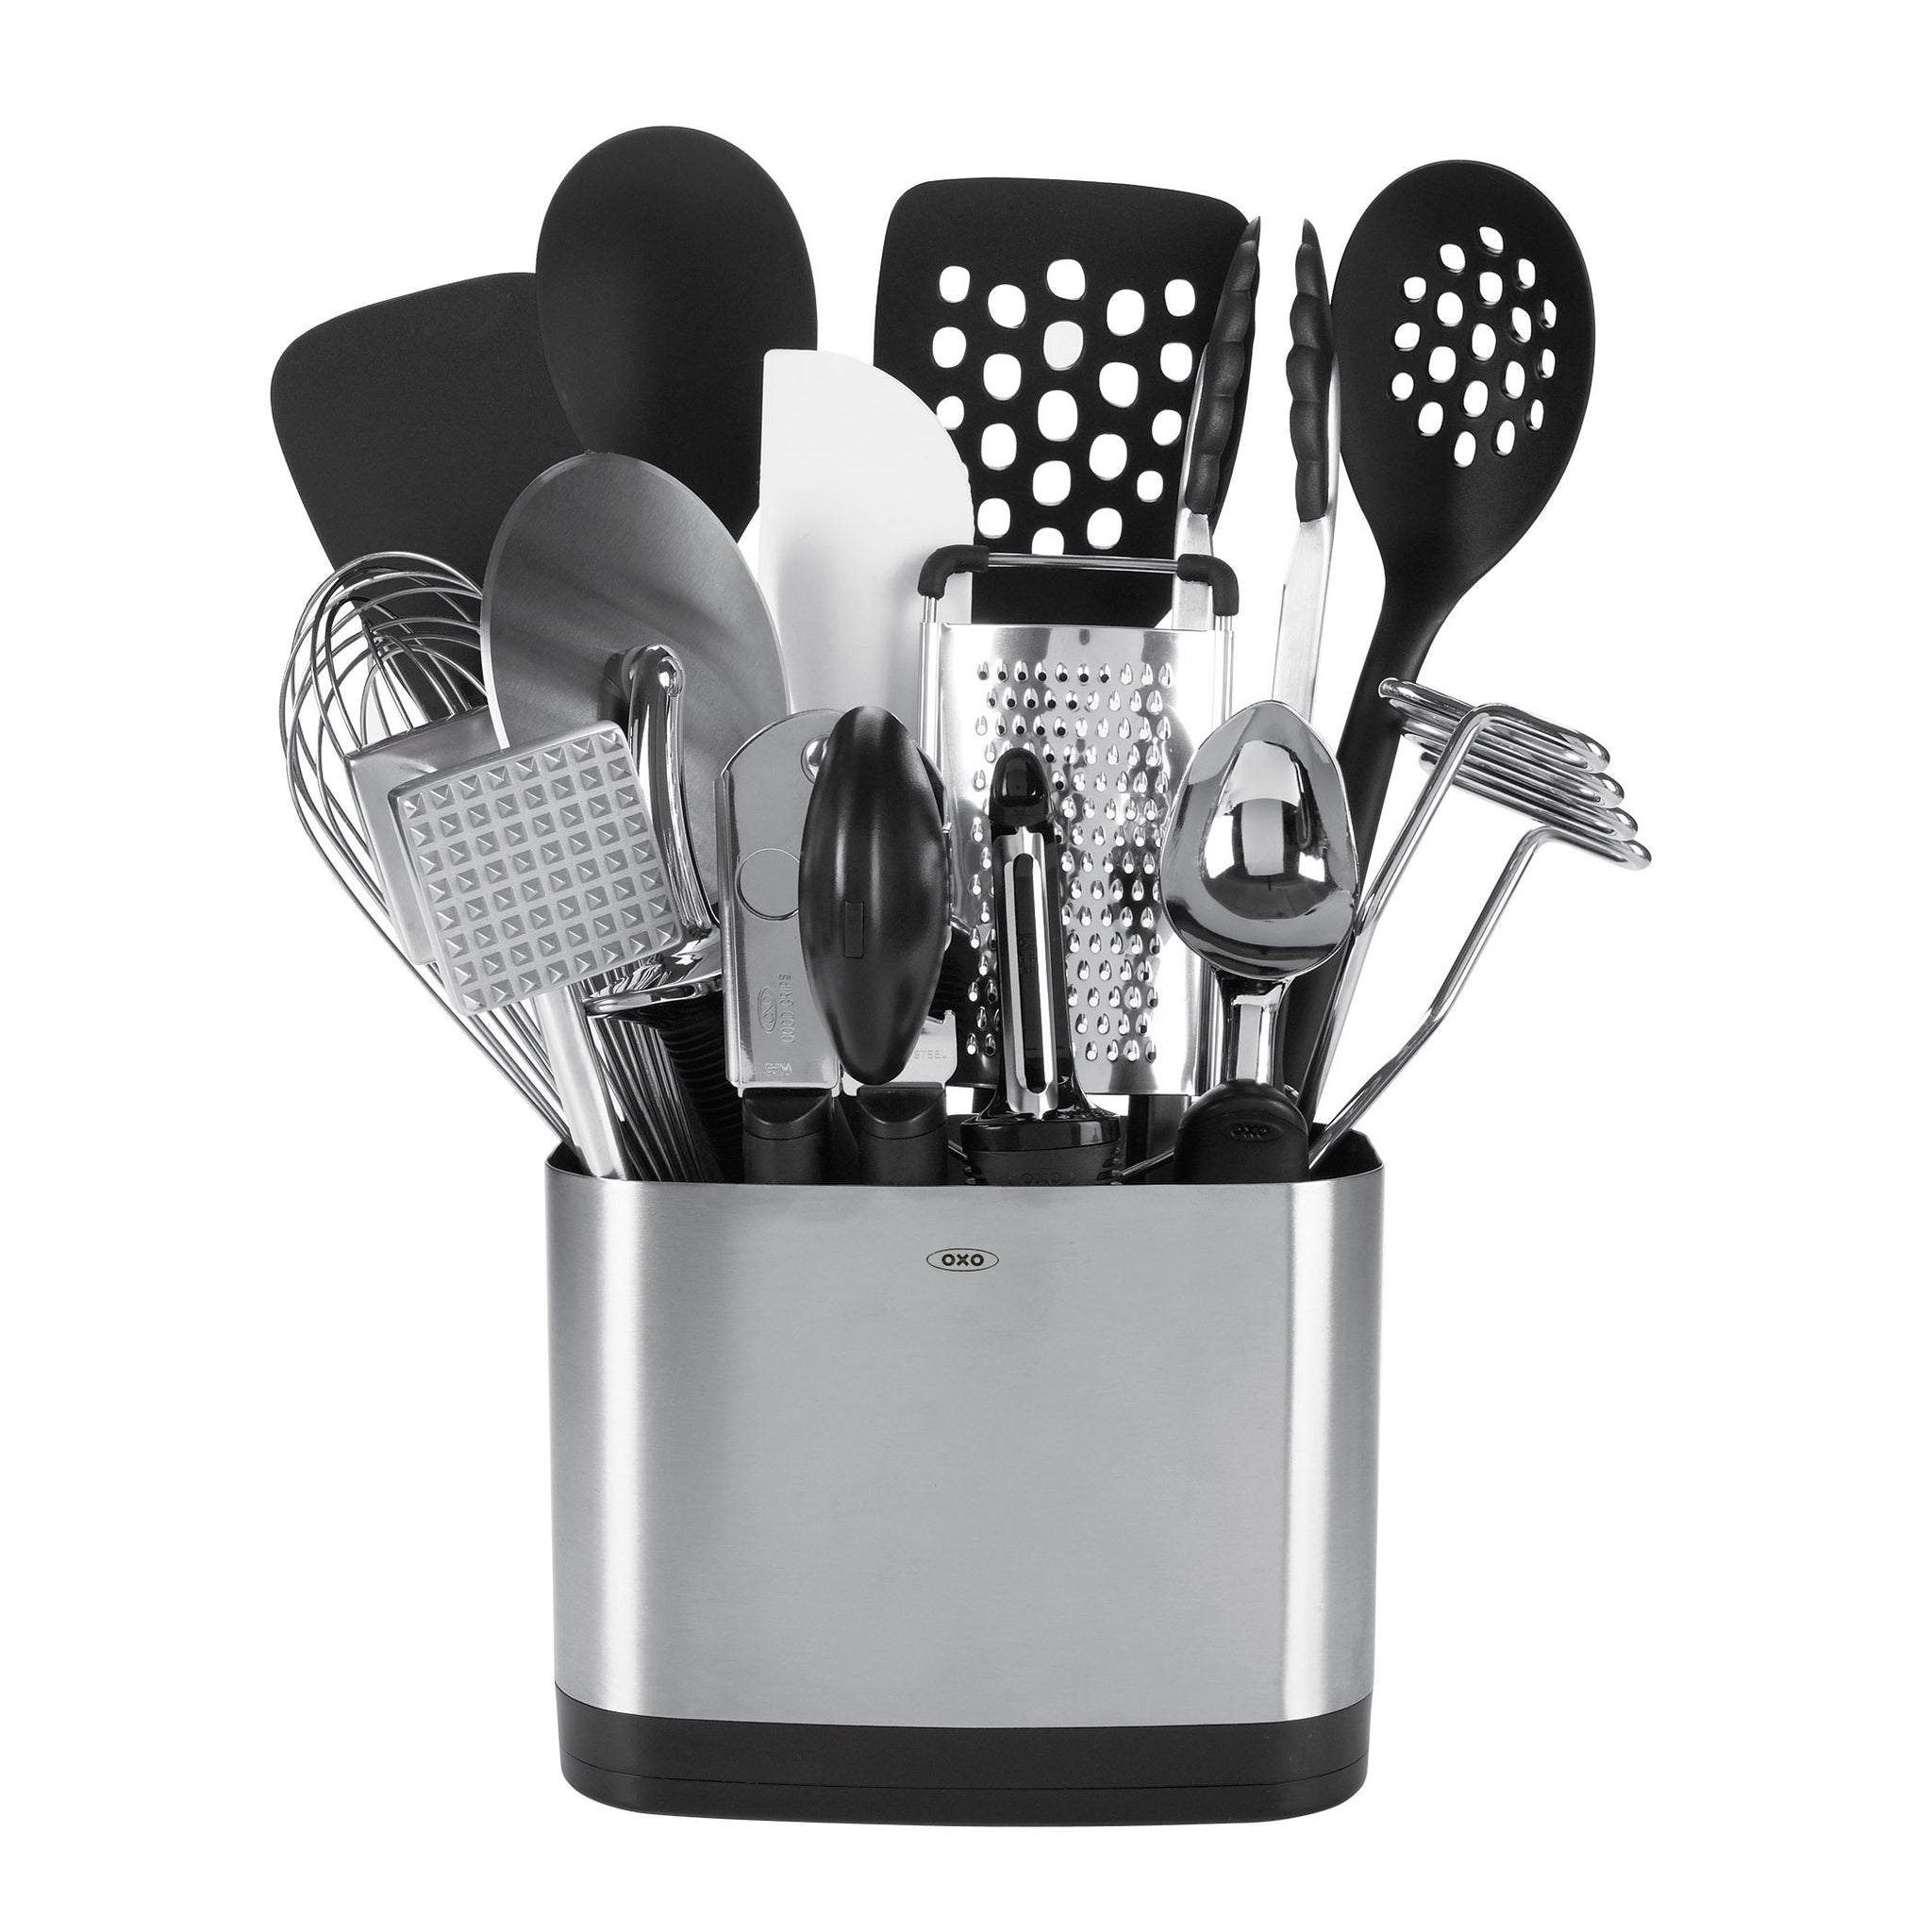 OXO 1069228 Good Grips 15-Piece Everyday Kitchen Tool Set